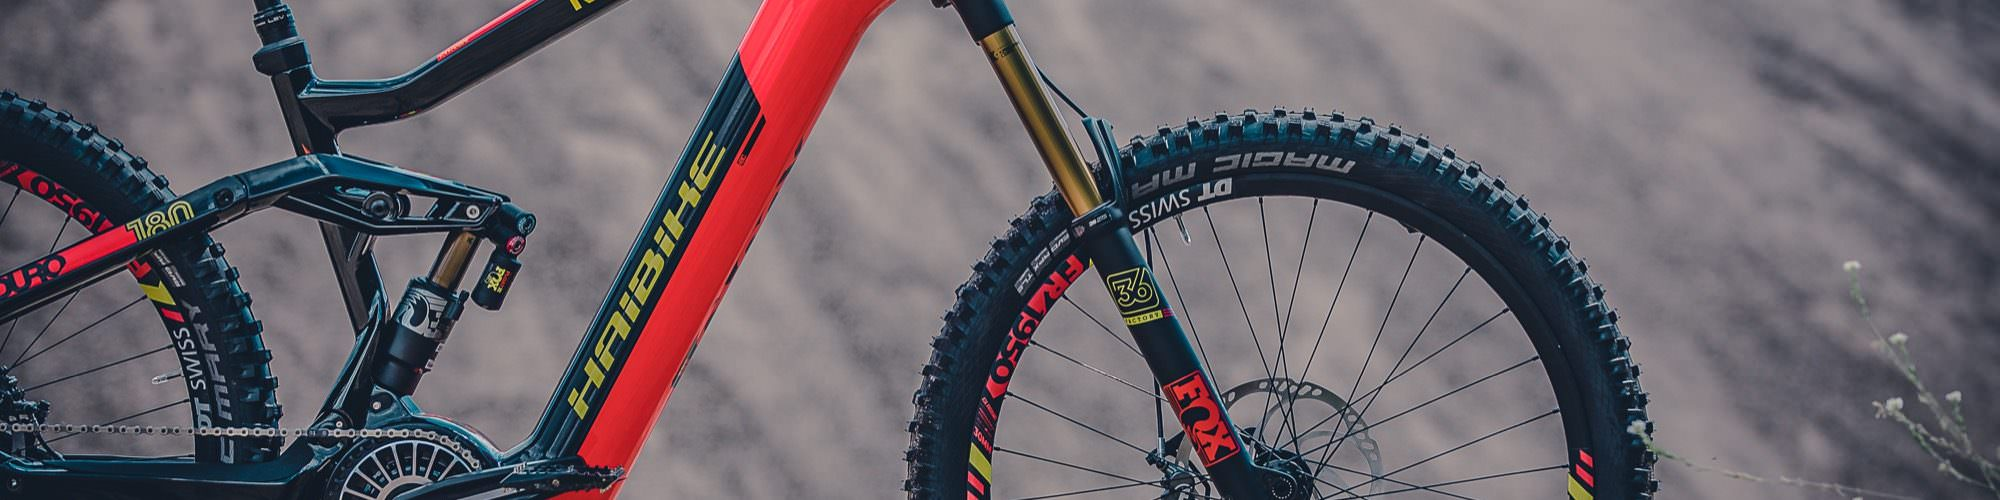 The biggest eMTB news and trends for 2019 | E-MOUNTAINBIKE